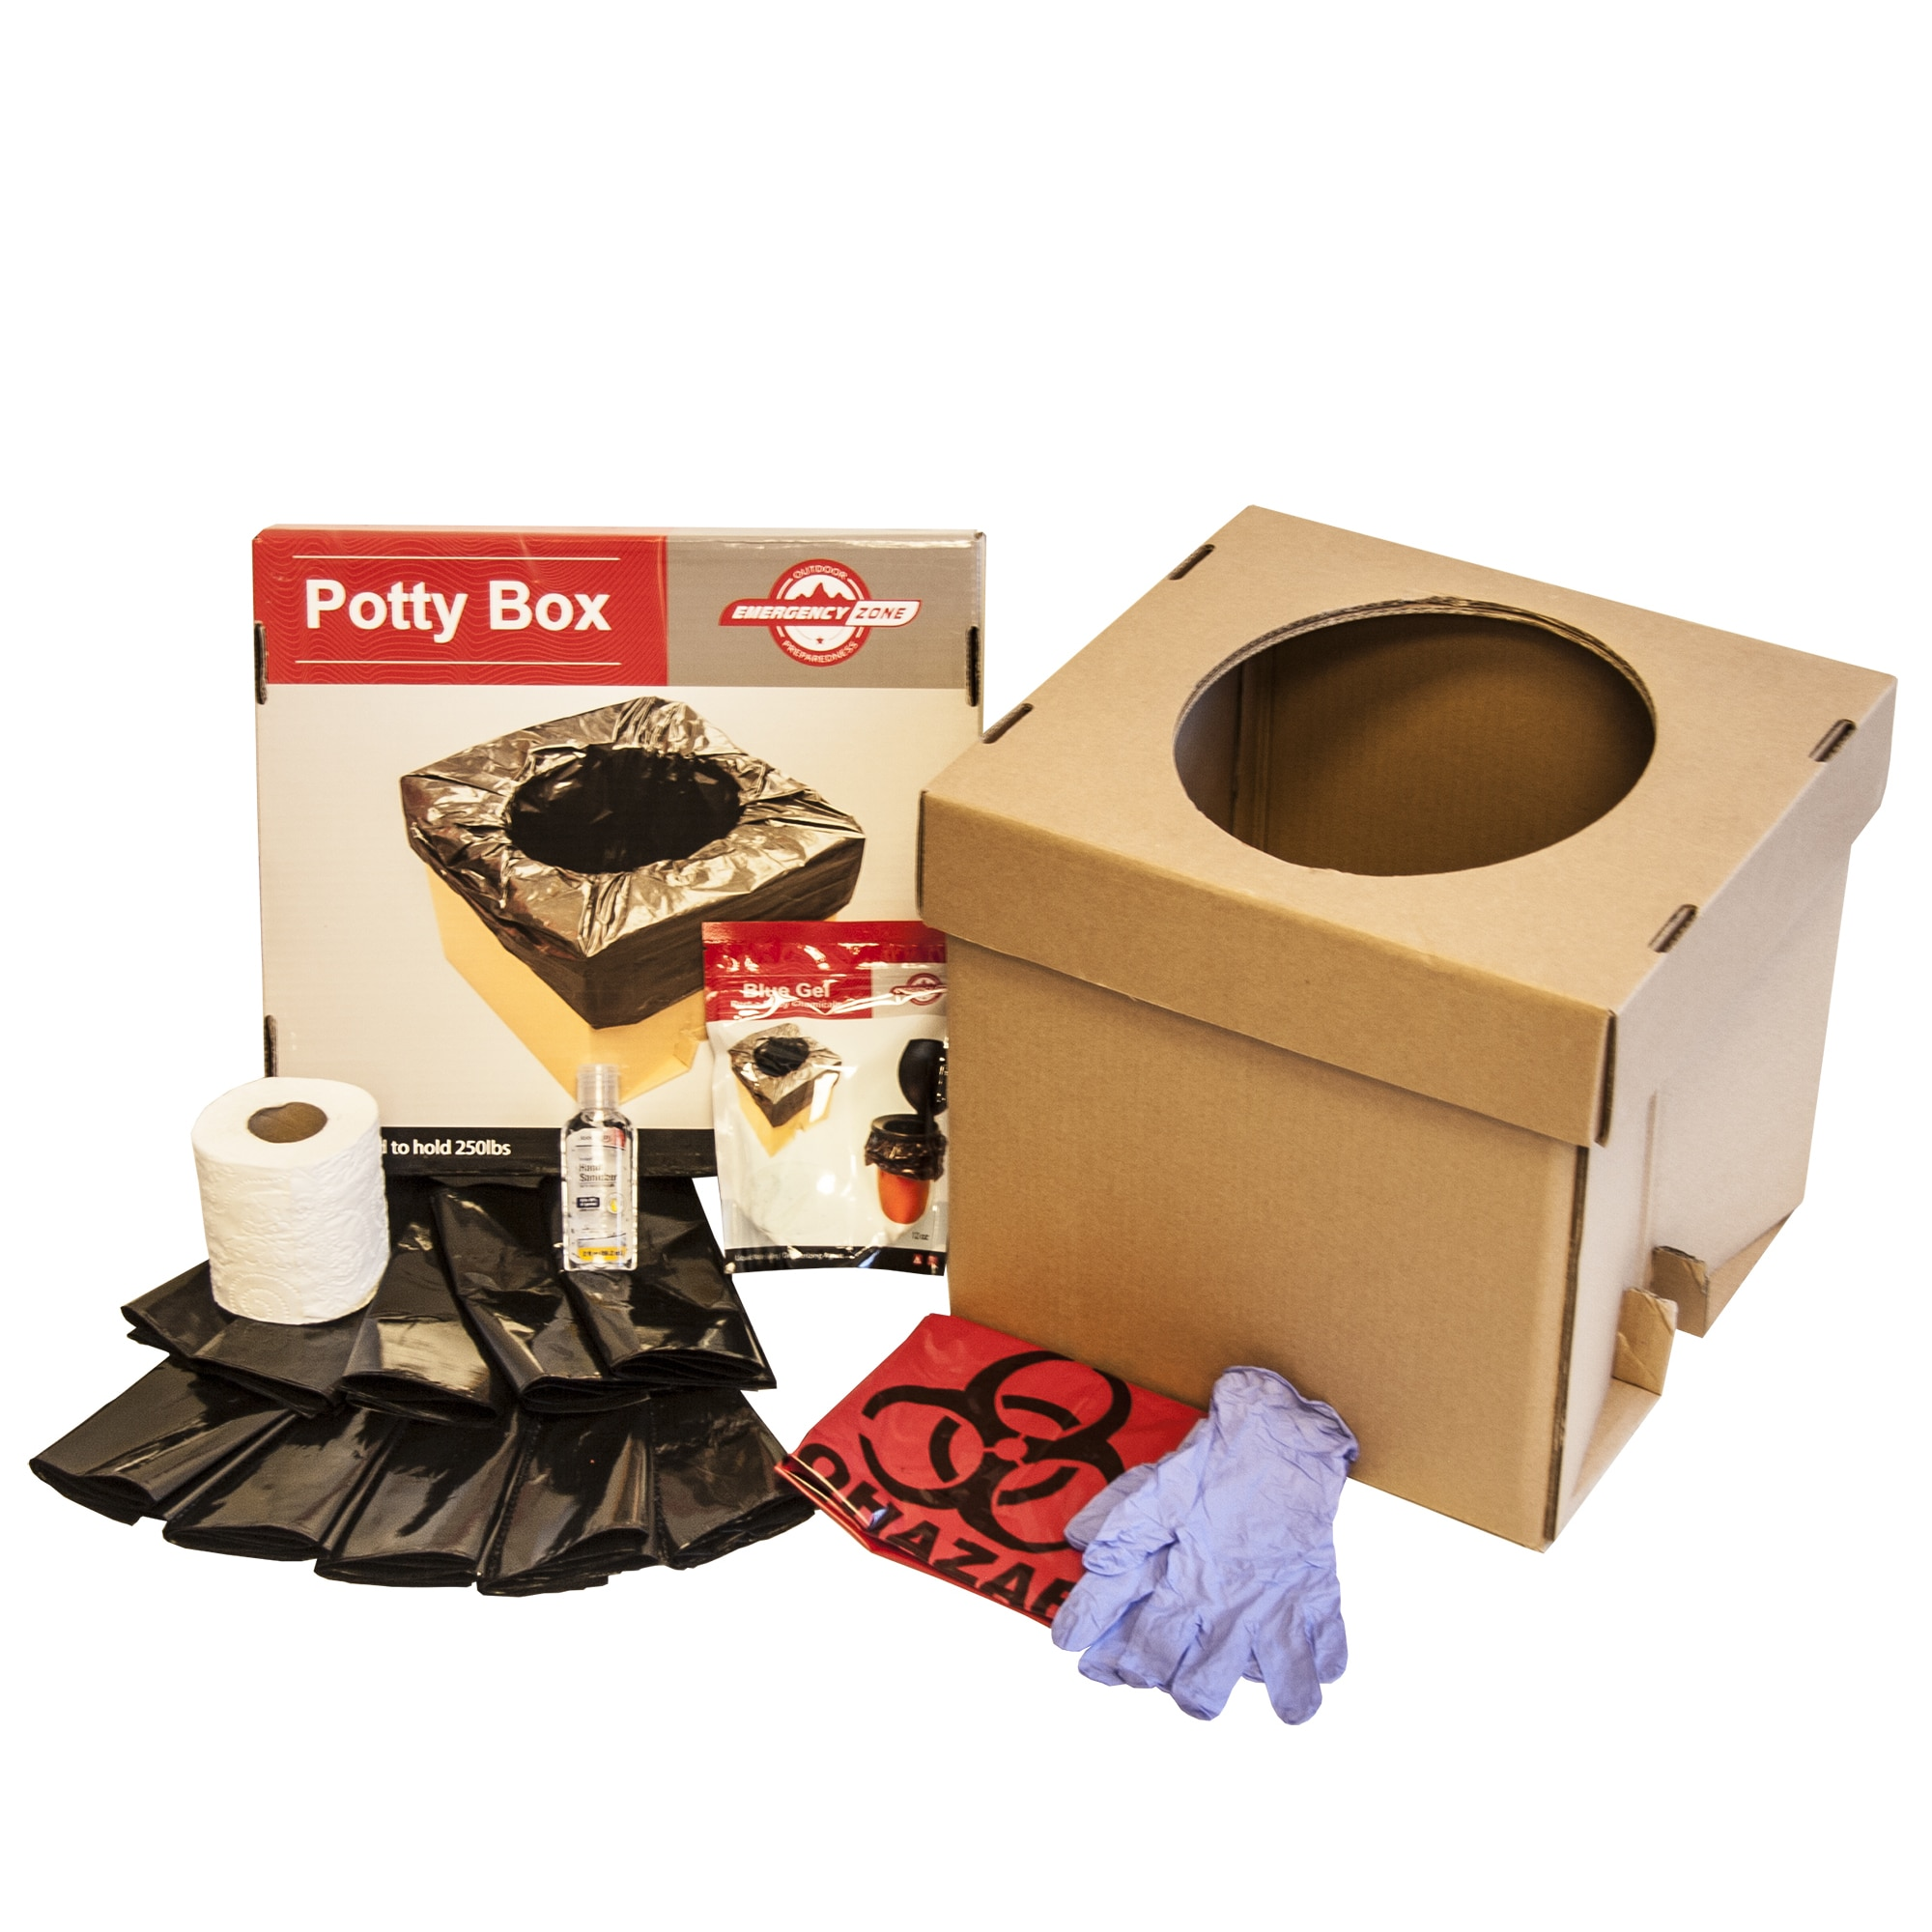 Potty Box, Portable Collapsible Toilet with Liners and Toilet Chemicals, Emergency Zone